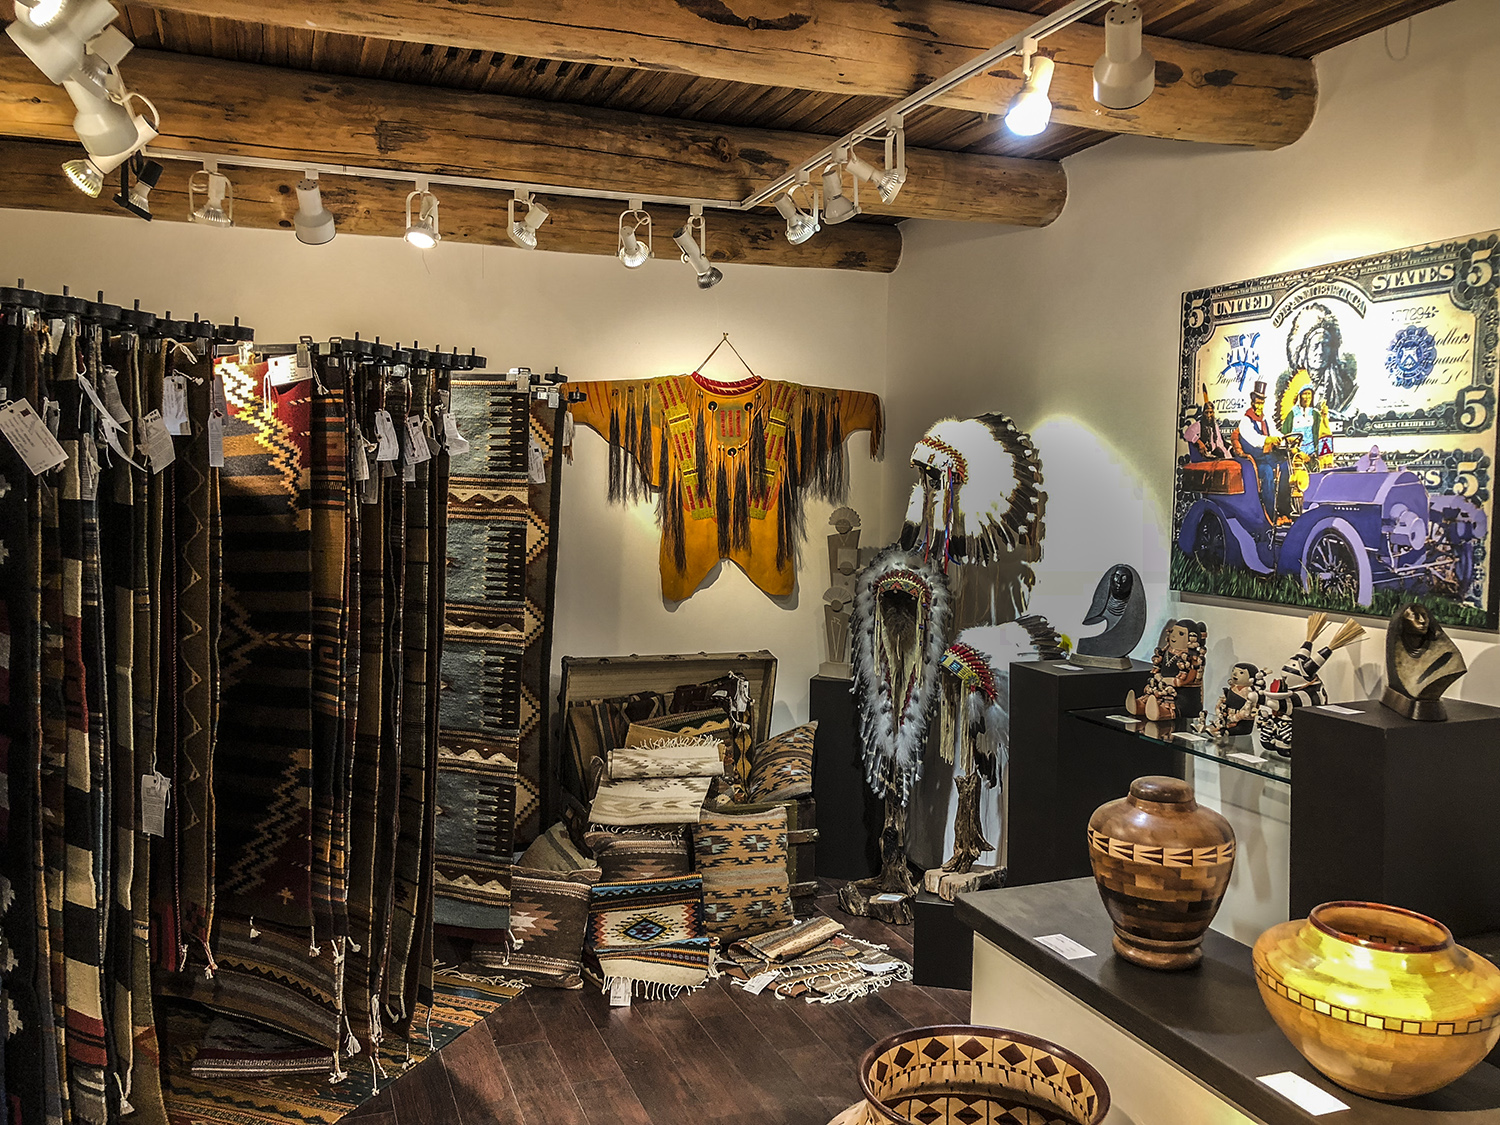 Contact - Turquoise Tortoise Gallery is located in Sedona, Arizona, amid the majestic red rocks near Oak Creek. Please contact us for more information about our artists and their work. Additional photographs of these and other works are available upon request.